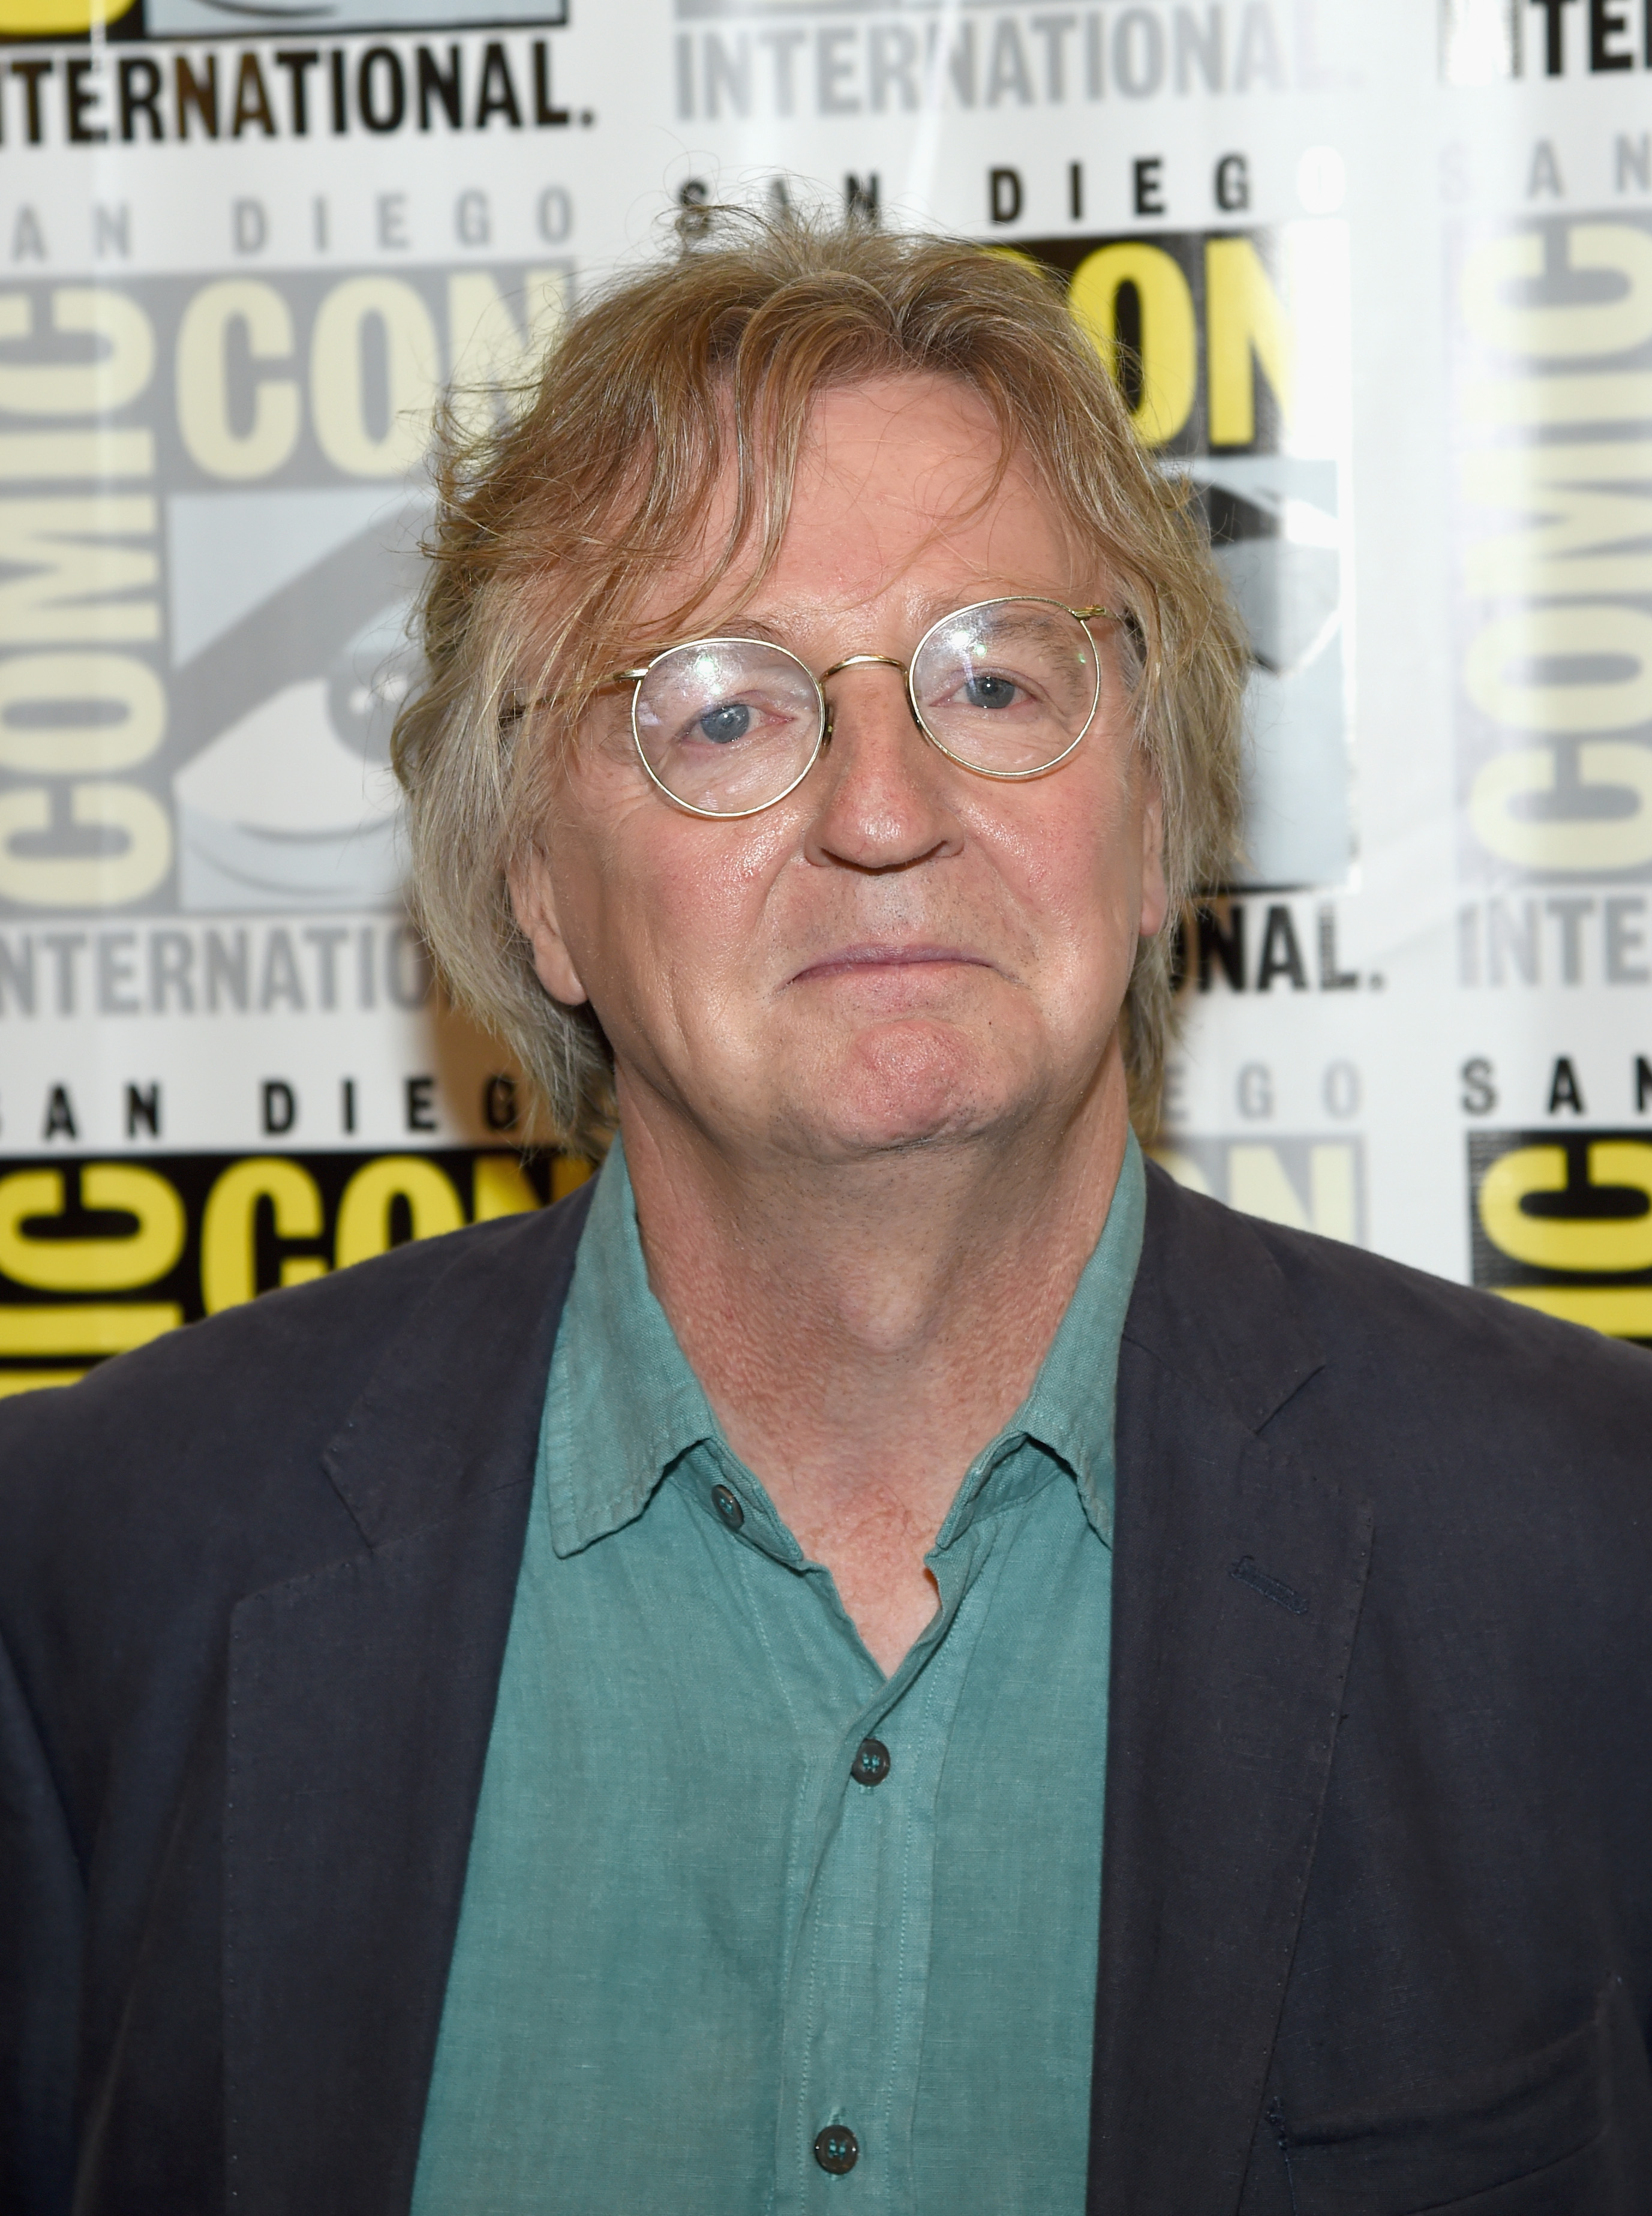 Writer/producer Michael Hirst attends a media room for the History series 'Vikings' during Comic-Con 2014 at the Hilton San Diego Bayfront hotel on July 25, 2014, in San Diego, California. (Getty Images)